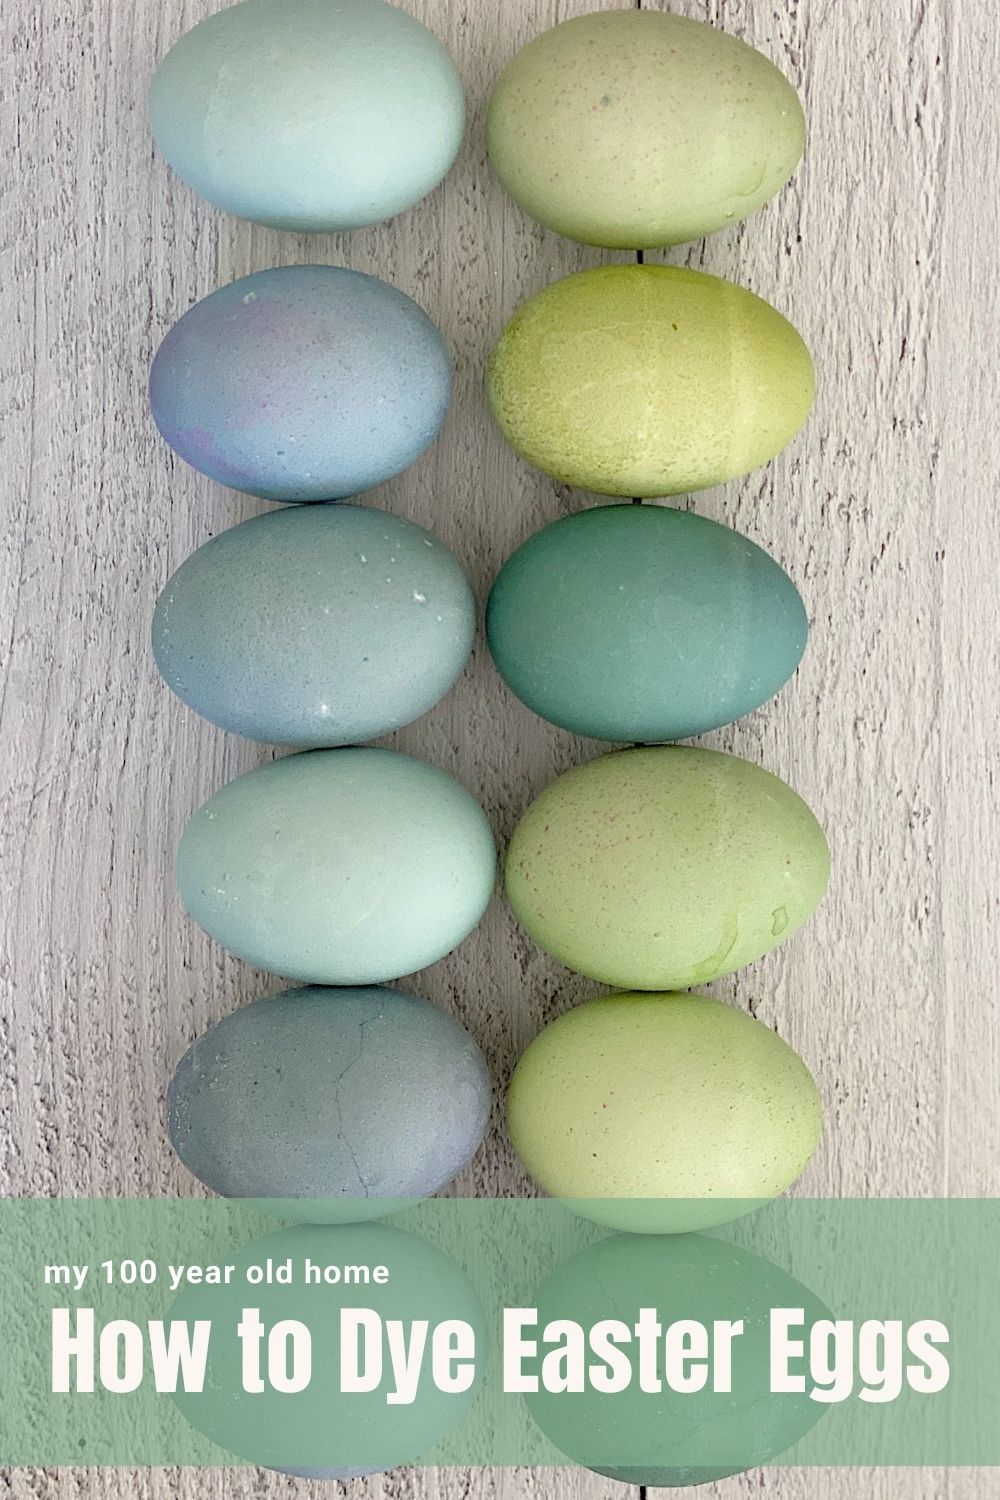 I have always loved Araucana chicken eggs ever since Martha Stewart shared them in her magazine. Today I shared how to dye Easter eggs in the same beautiful chicken egg colors.